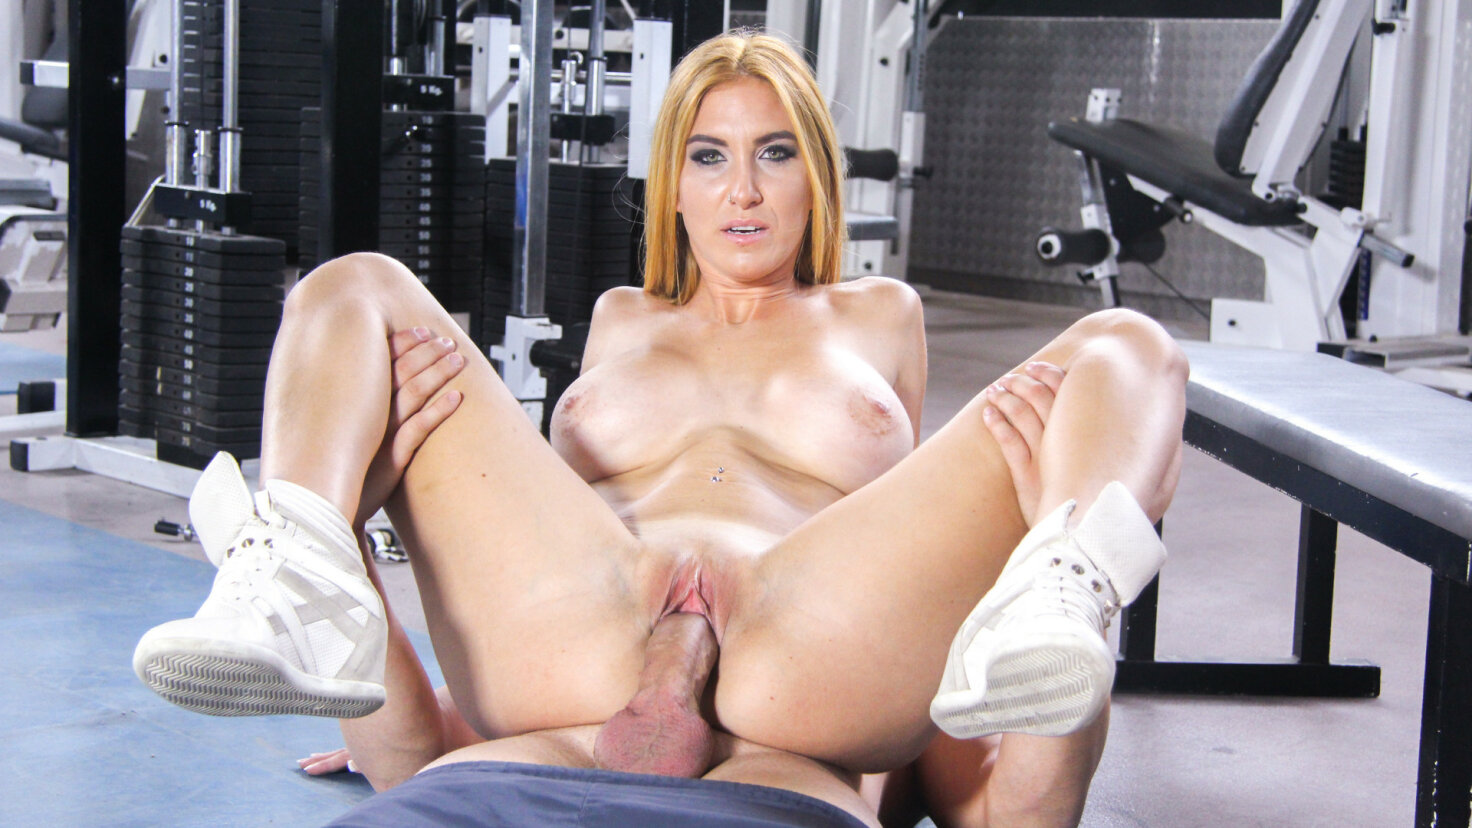 Busty Spanish blondie Valeria Blue gets cum covered in steamy gym fuck